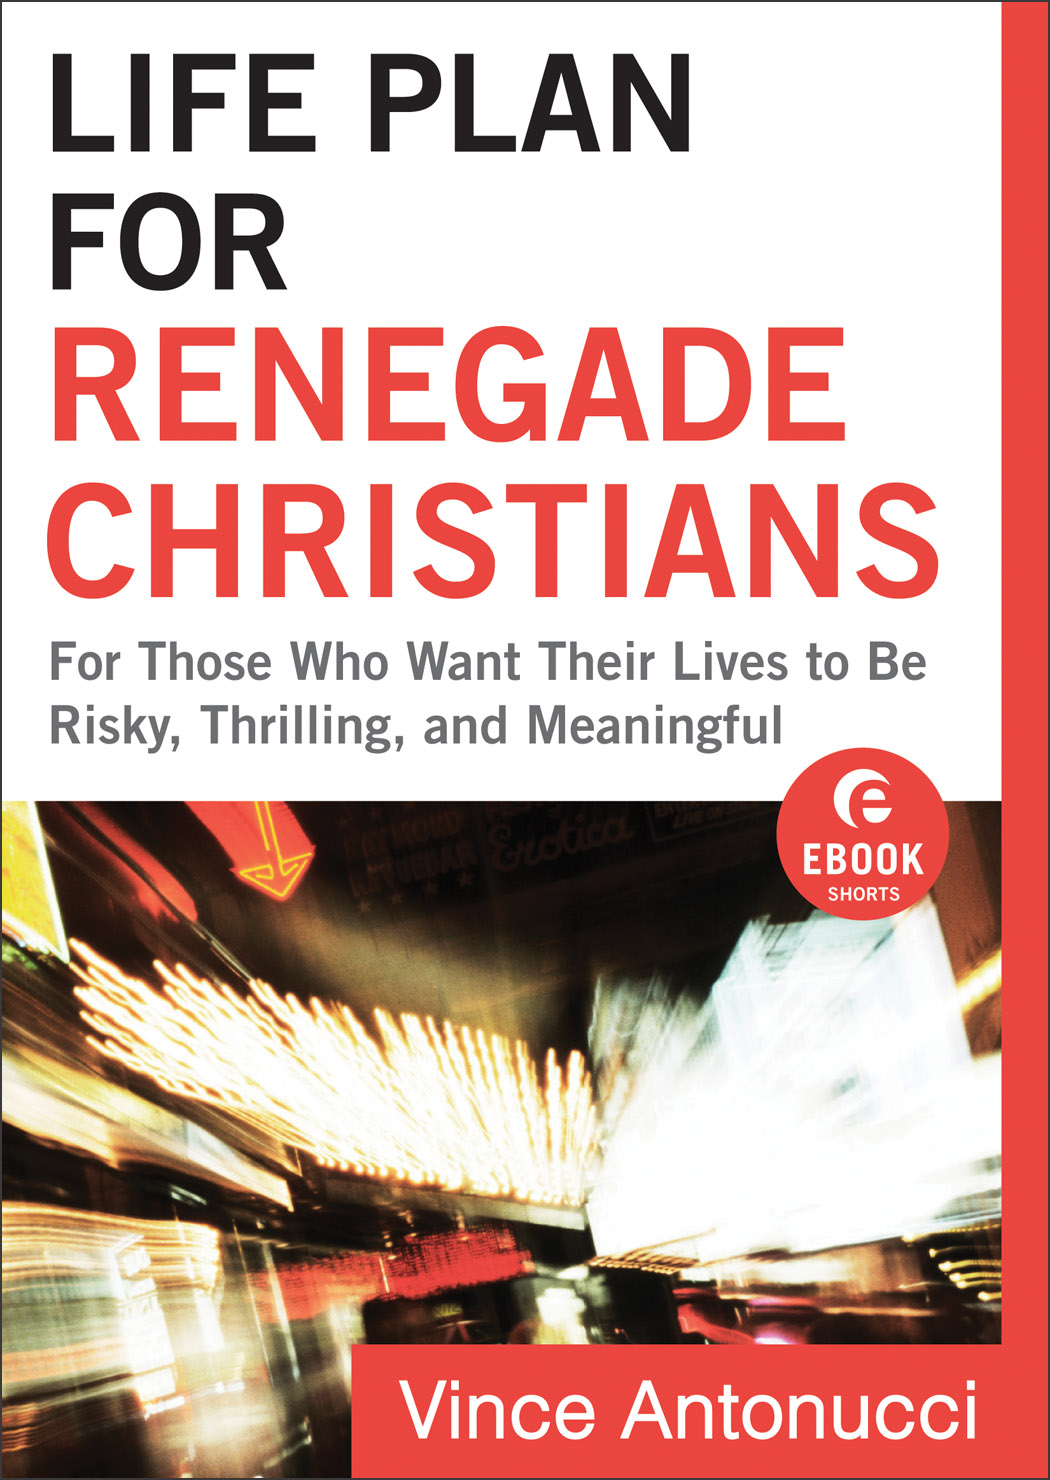 Life Plan for Renegade Christians (Ebook Shorts)